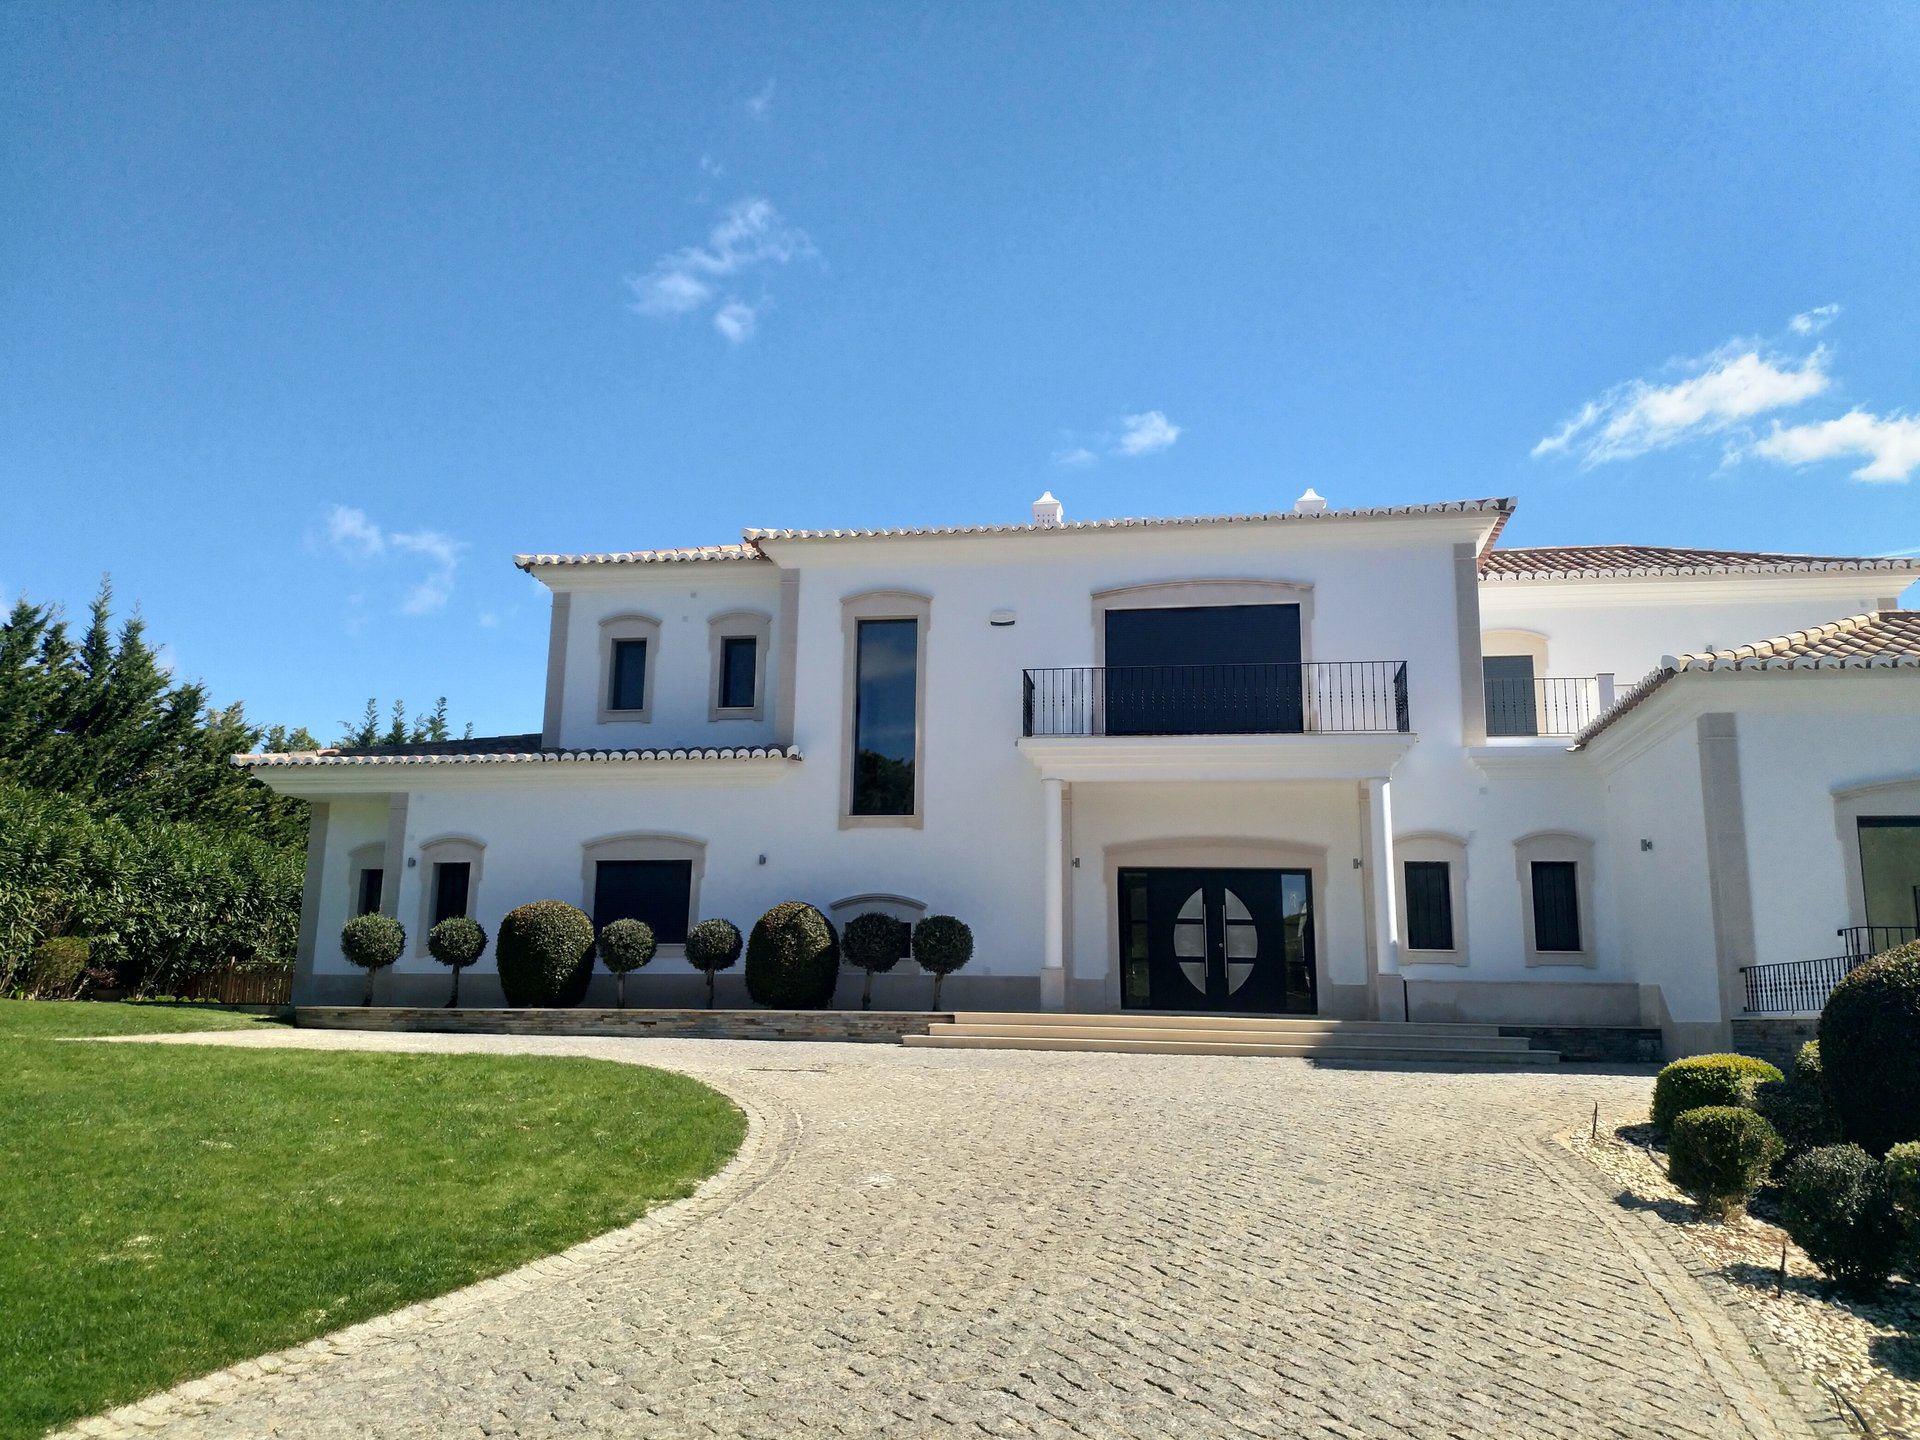 7 Bedroom Villa Quinta Do Lago, Central Algarve Ref: MV22473